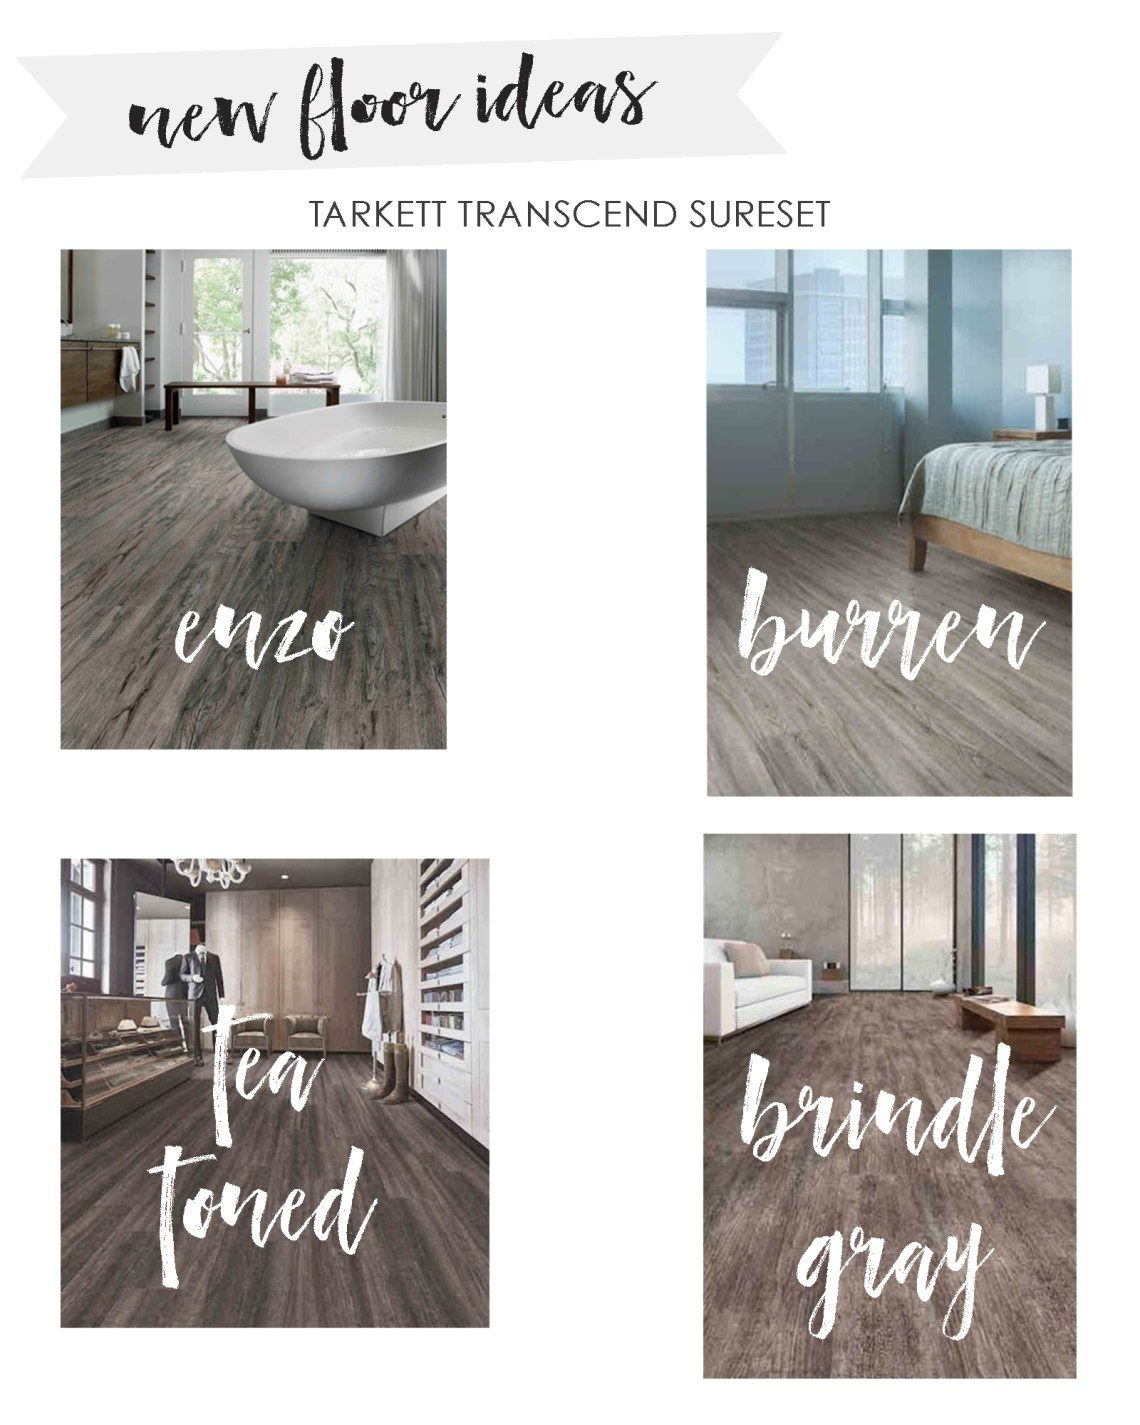 Vinyl Flooring Wood Floors by Tarkett - Home Design via Misty Nelson frostedblog.com @frostedevents